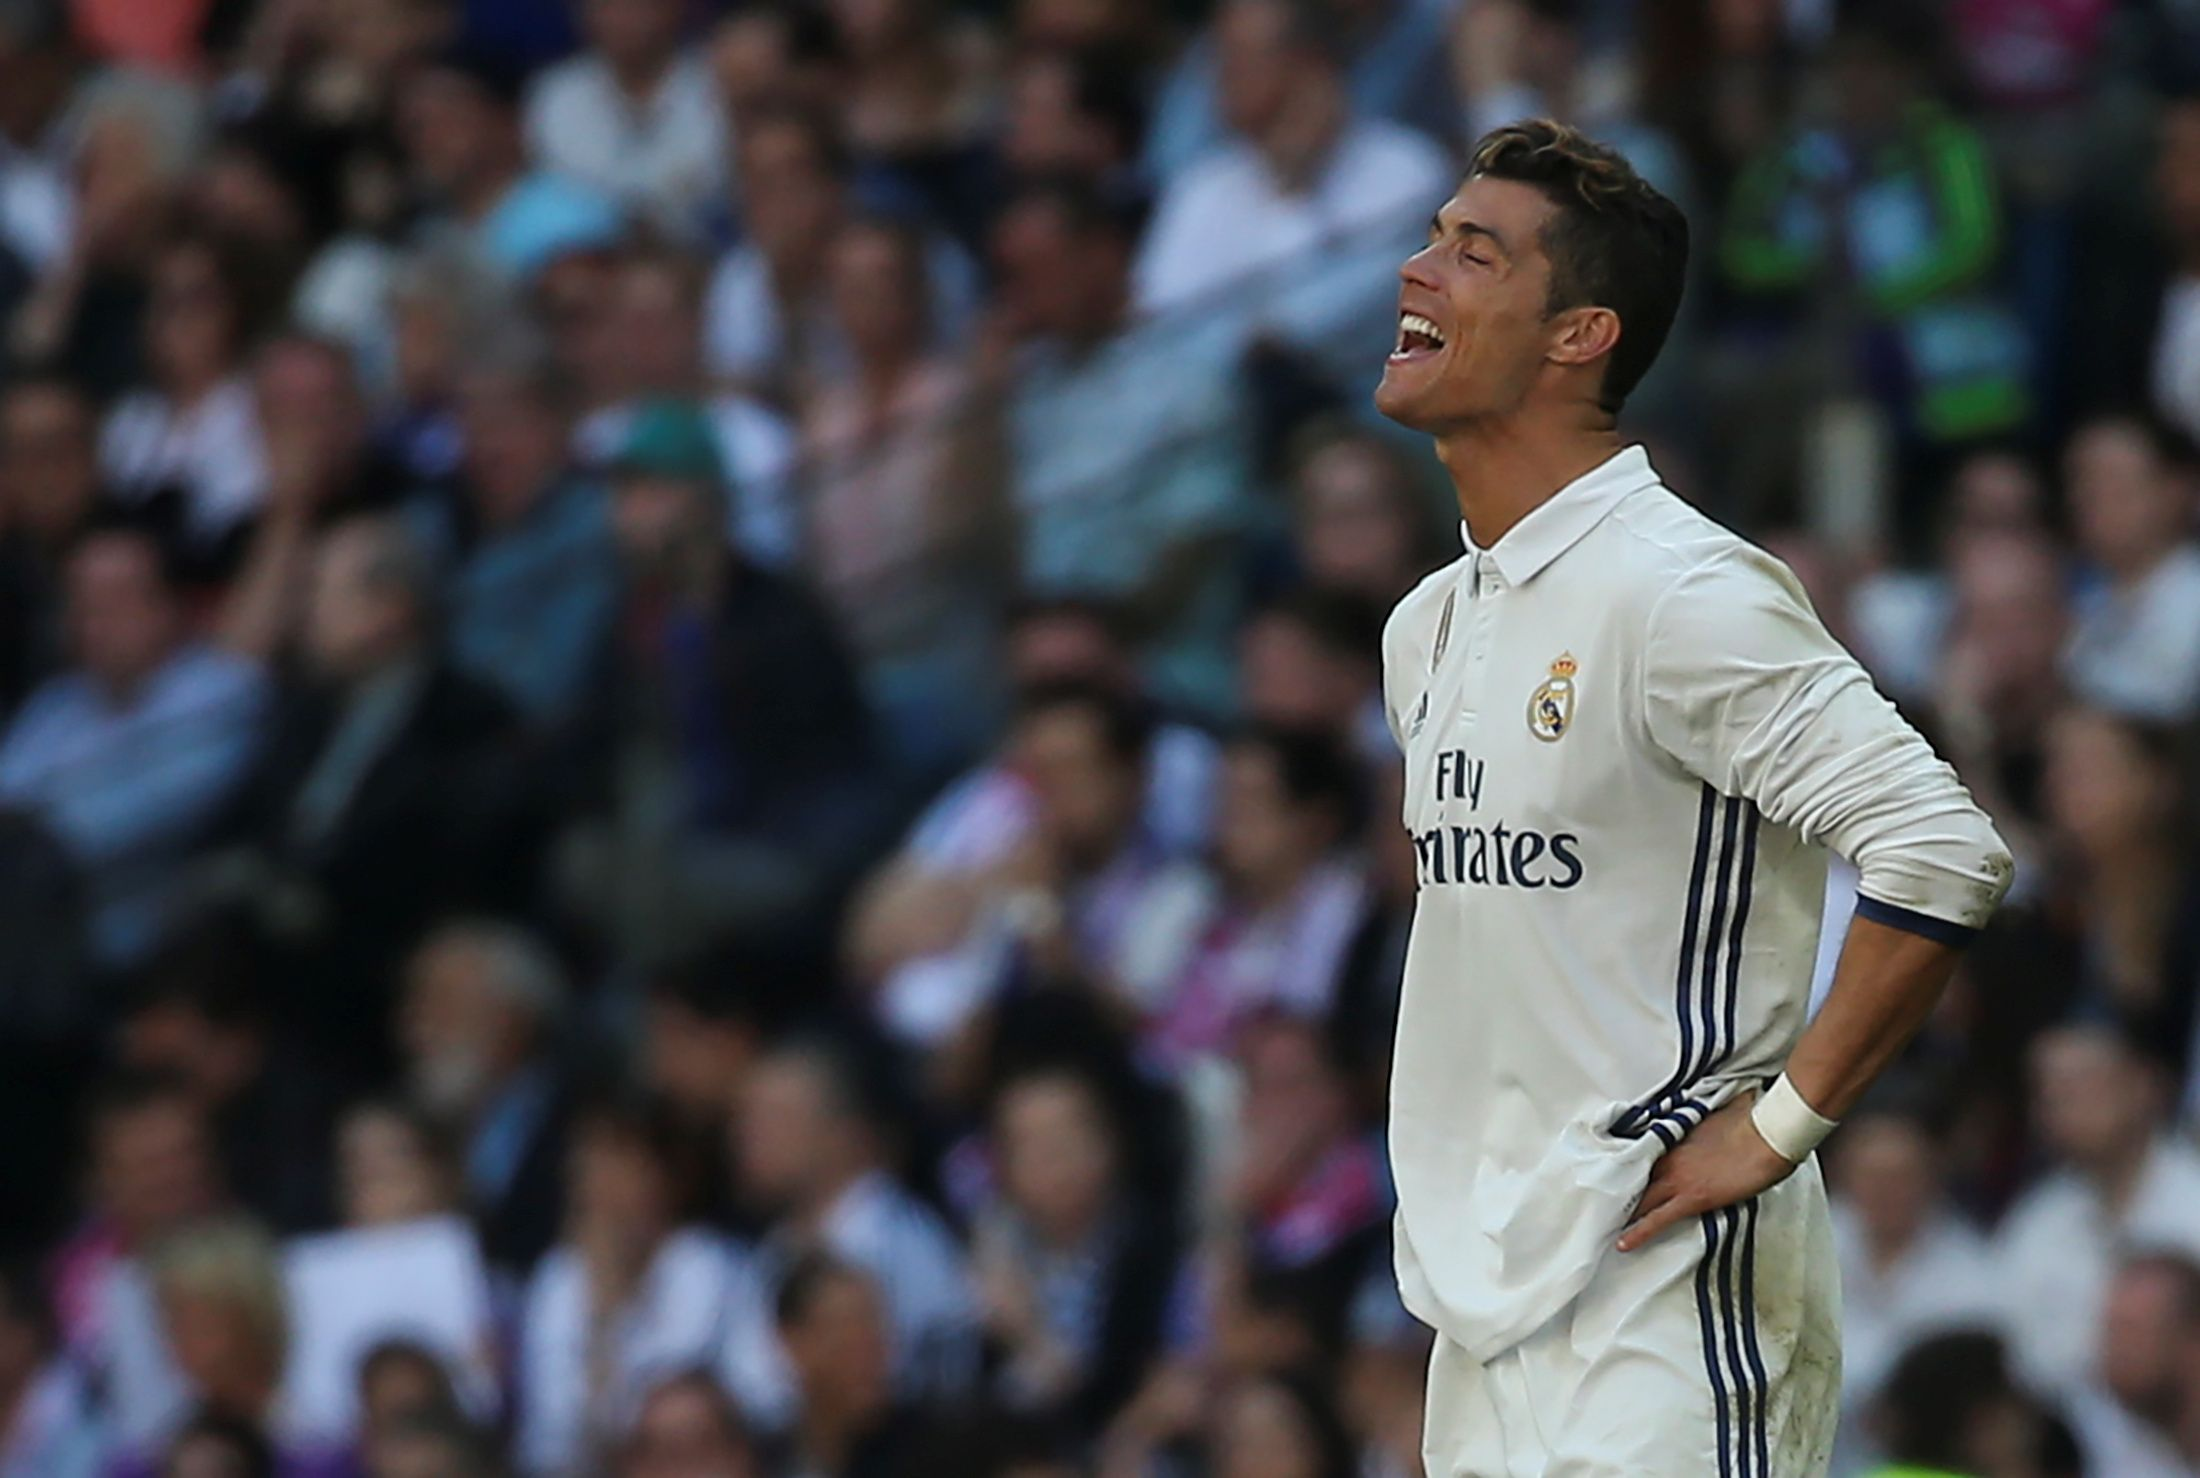 Real Madrid: Cristiano Ronaldo Could be Sold This Summer ...  Real Madrid: Cr...